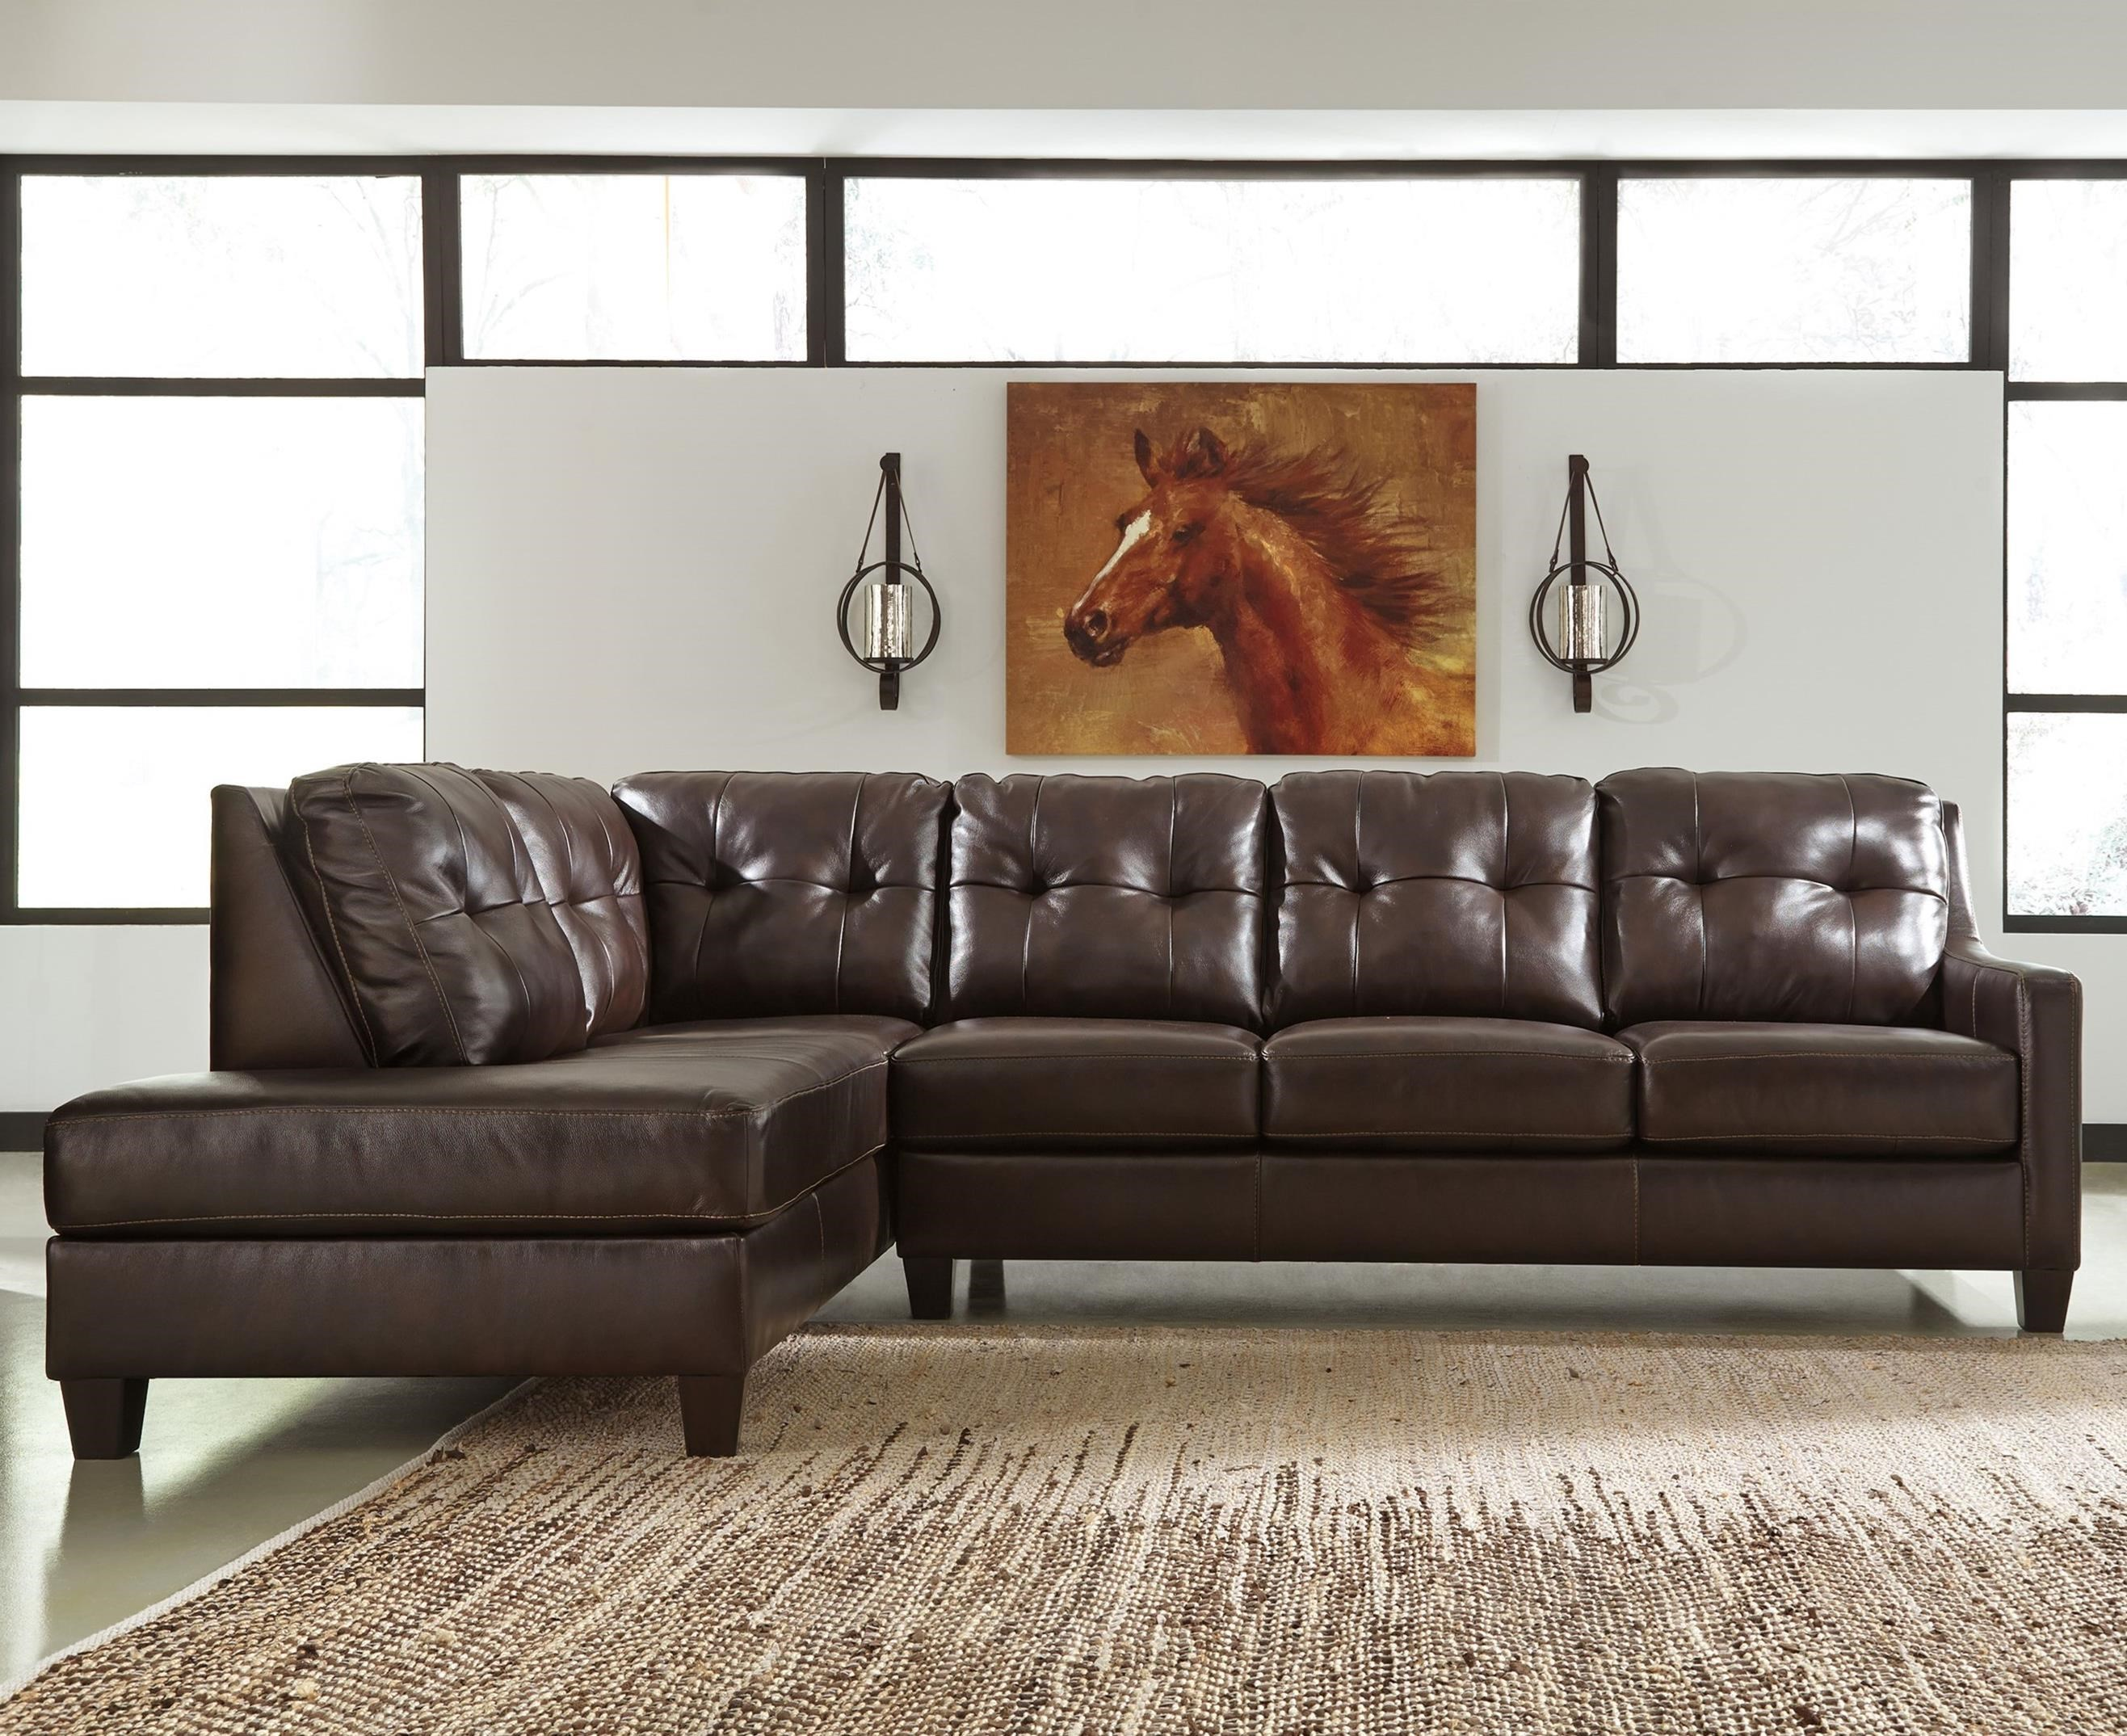 Signature Design By Ashley Ou0027Kean Leather Match 2 Piece Sectional With Left  Chaise U0026 Sleeper   Becker Furniture World   Sectional Sofas